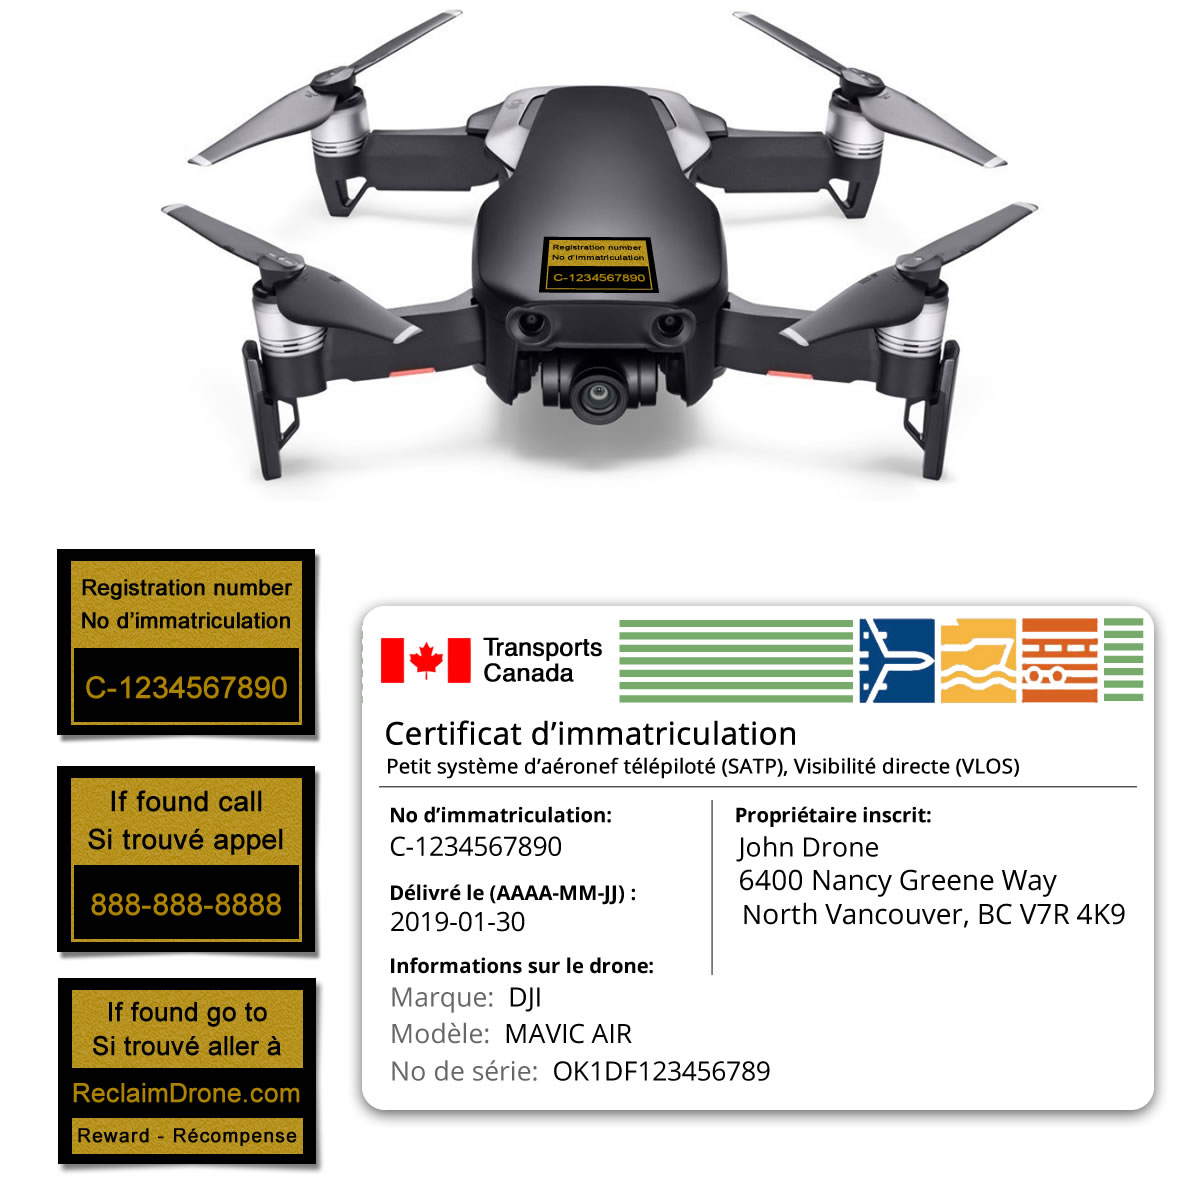 Mavic Air drone registration bundle for Canada – French version